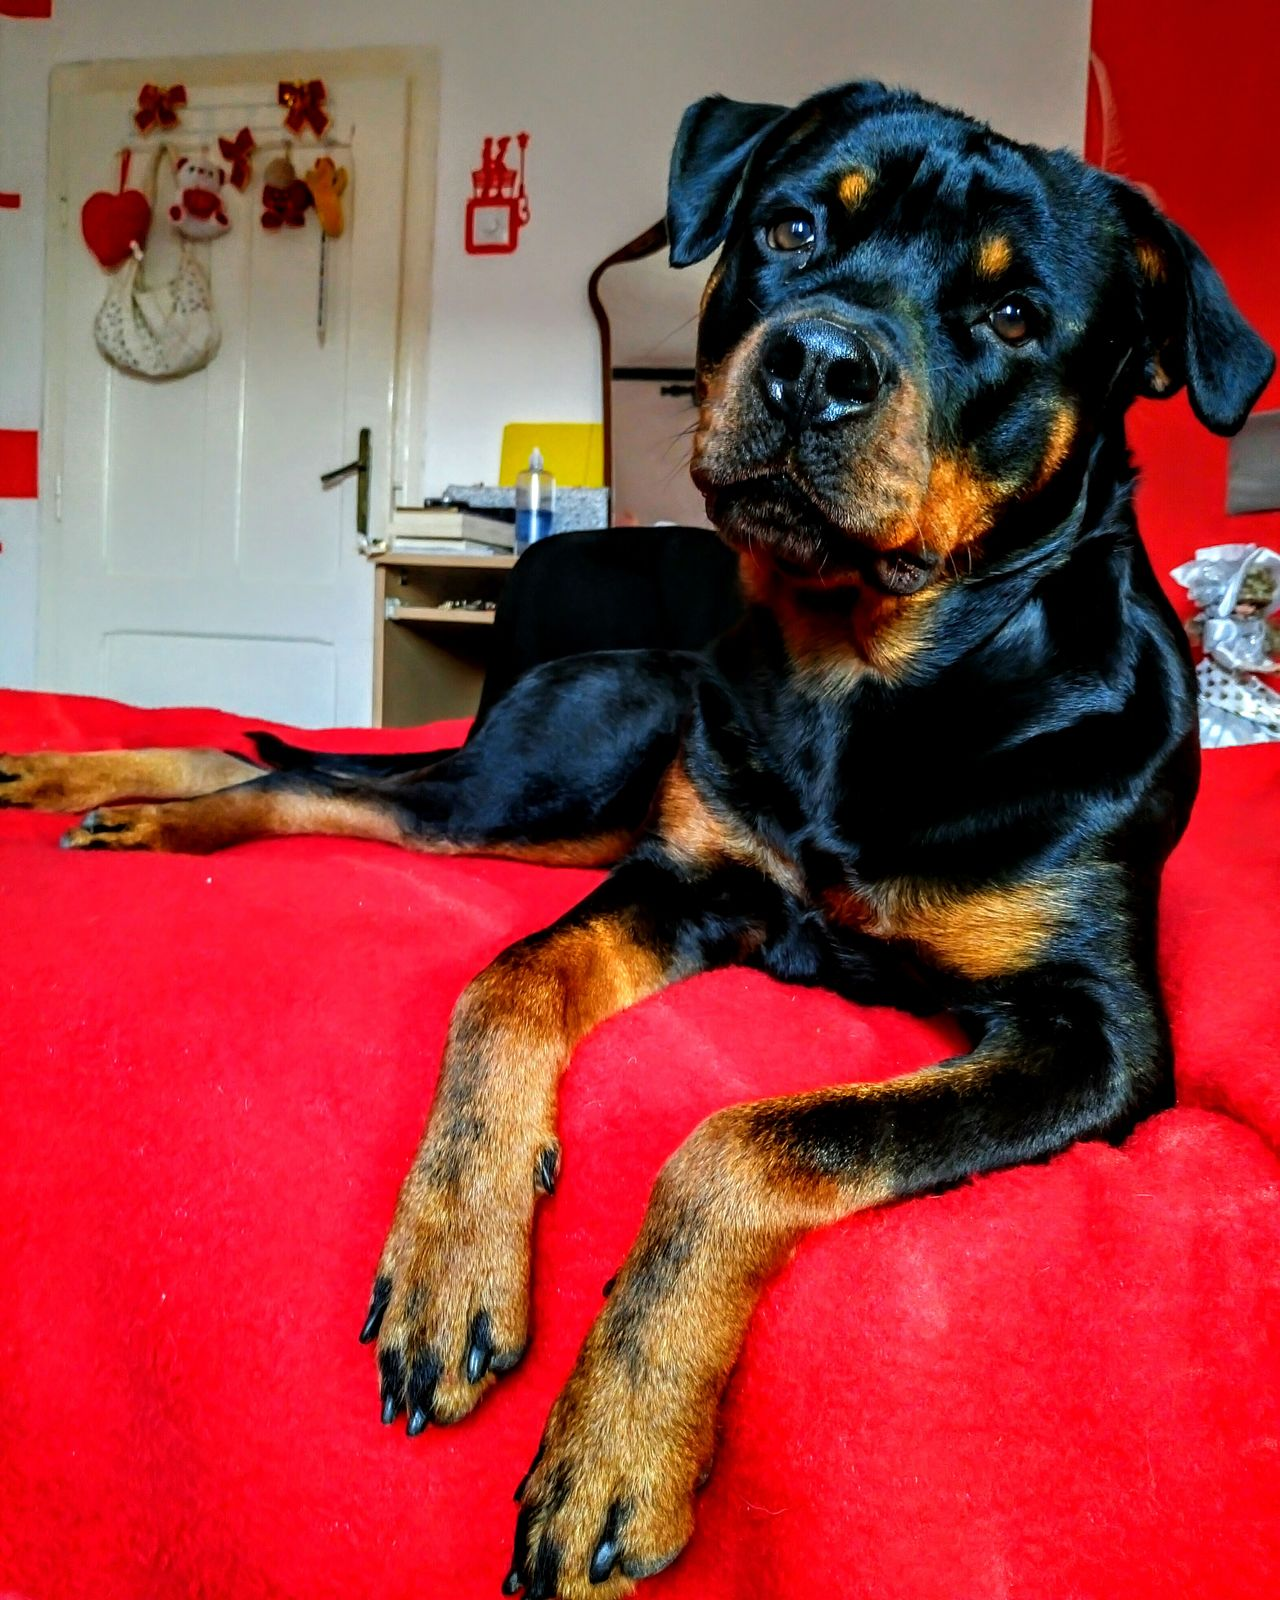 Pets Dog One Animal Animal Themes Domestic Animals Relaxation Mammal Bed Indoors  Front View Bedroom No People Close-up Day Animal Portrait Rottweiler Focus On Foreground